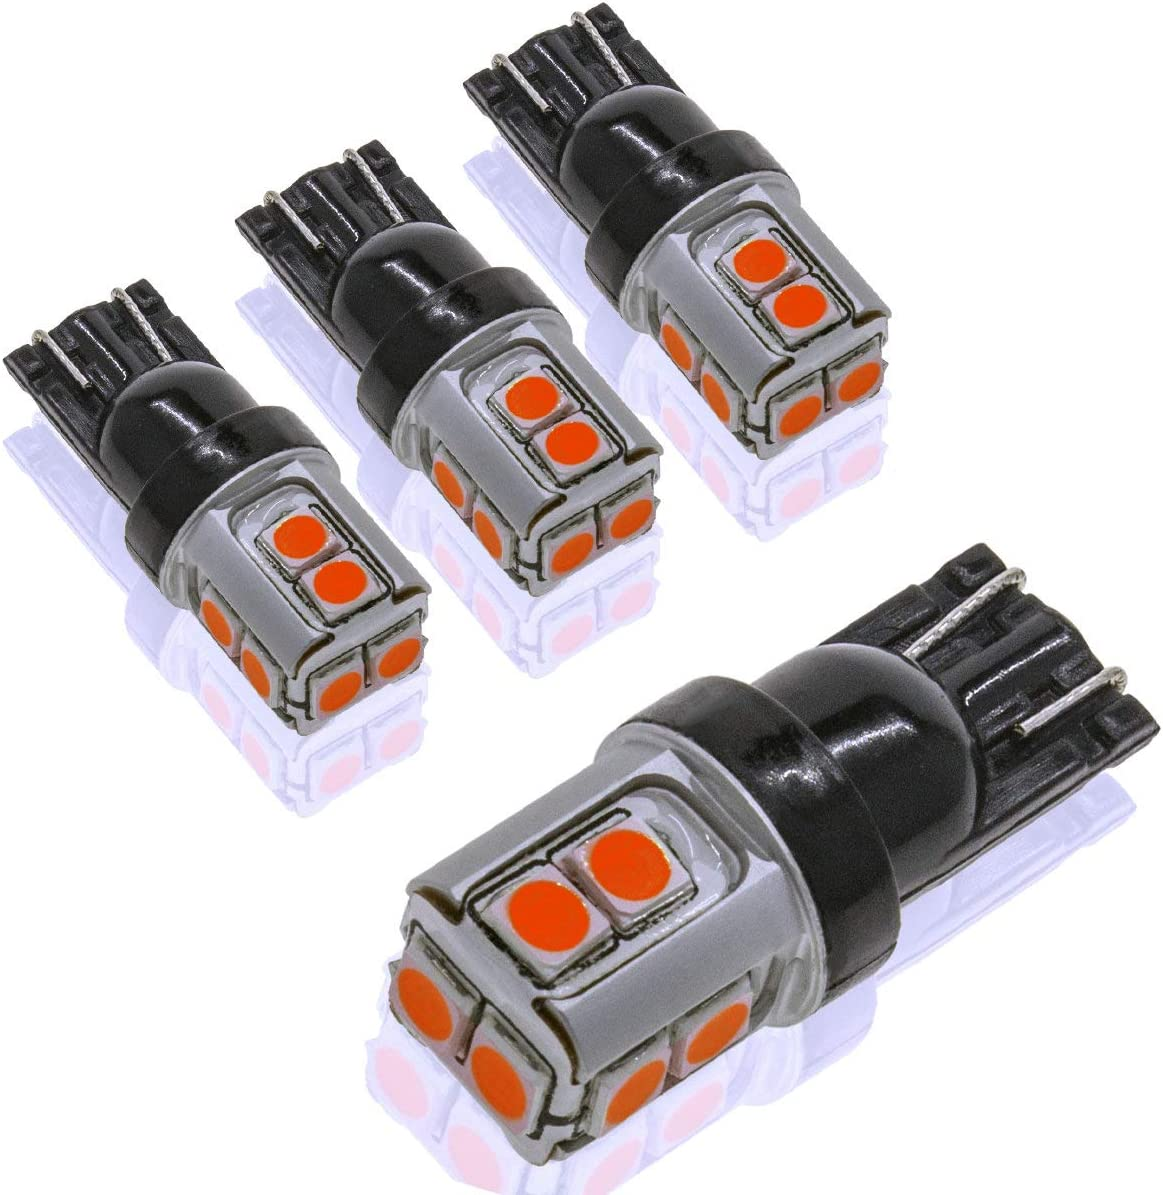 DODOFUN CANBUS T10 Extra Bright Red Color Car Interior Exterior Replacement Bulb 168 175 194 2825 W5W etc. Size Map Dome Door LED Light 12V ~ 24V Error Free (Pack of 4)